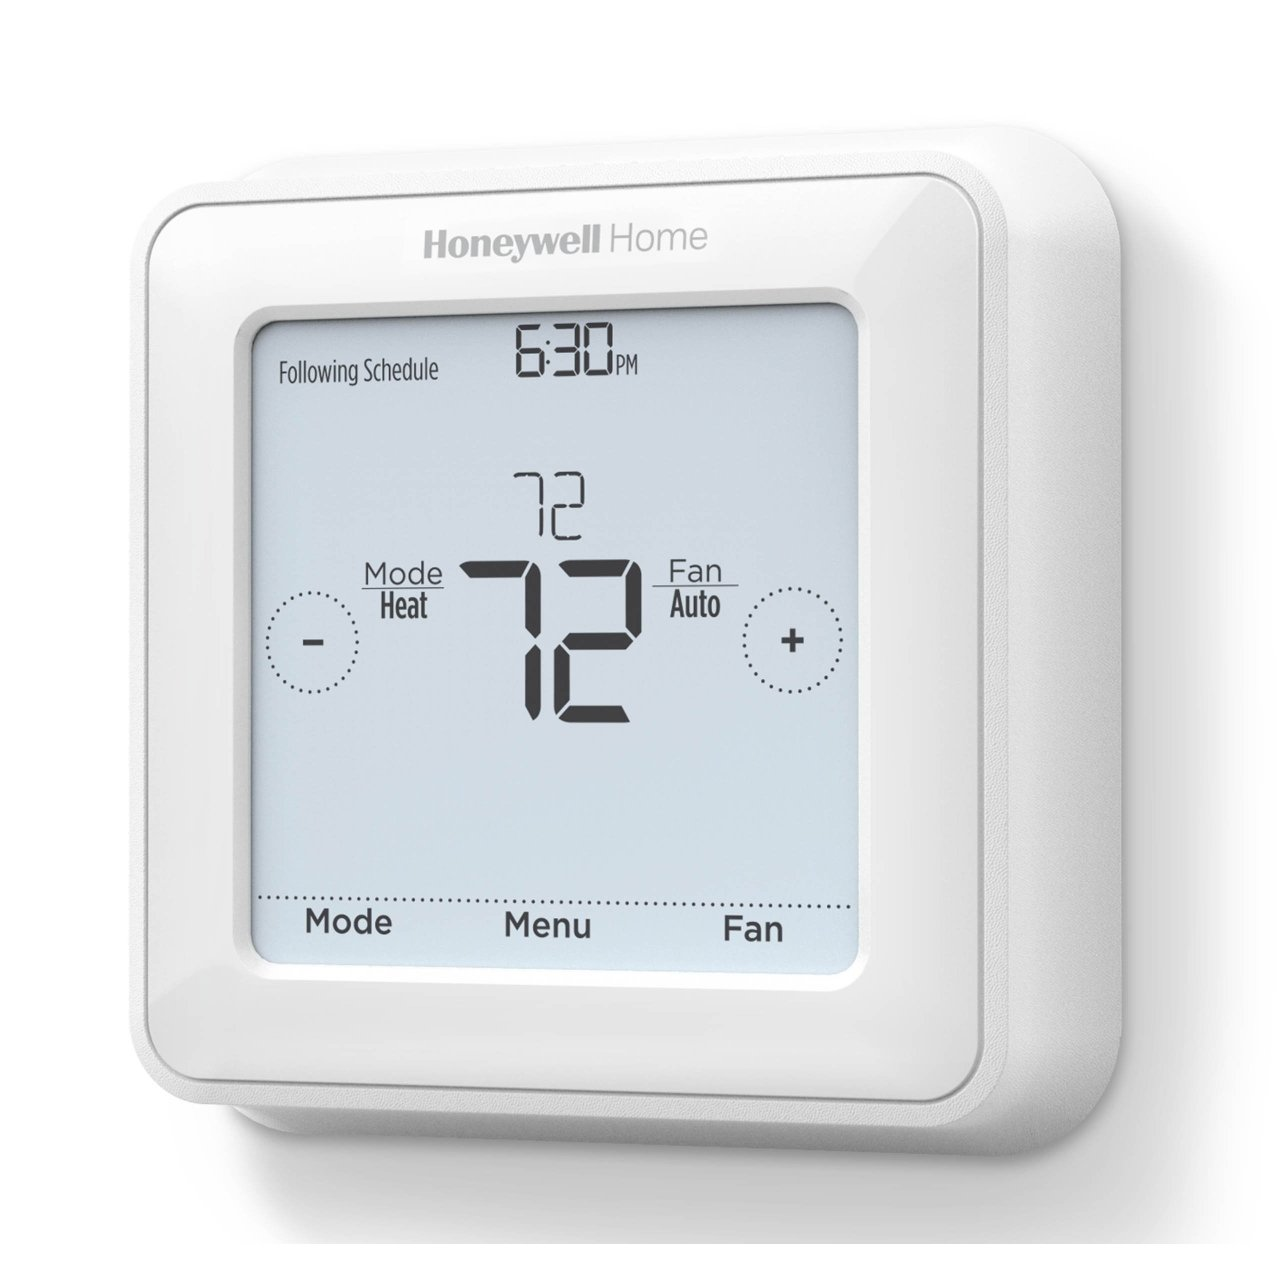 White T5 Touchscreen Thermostat Honeywell Home